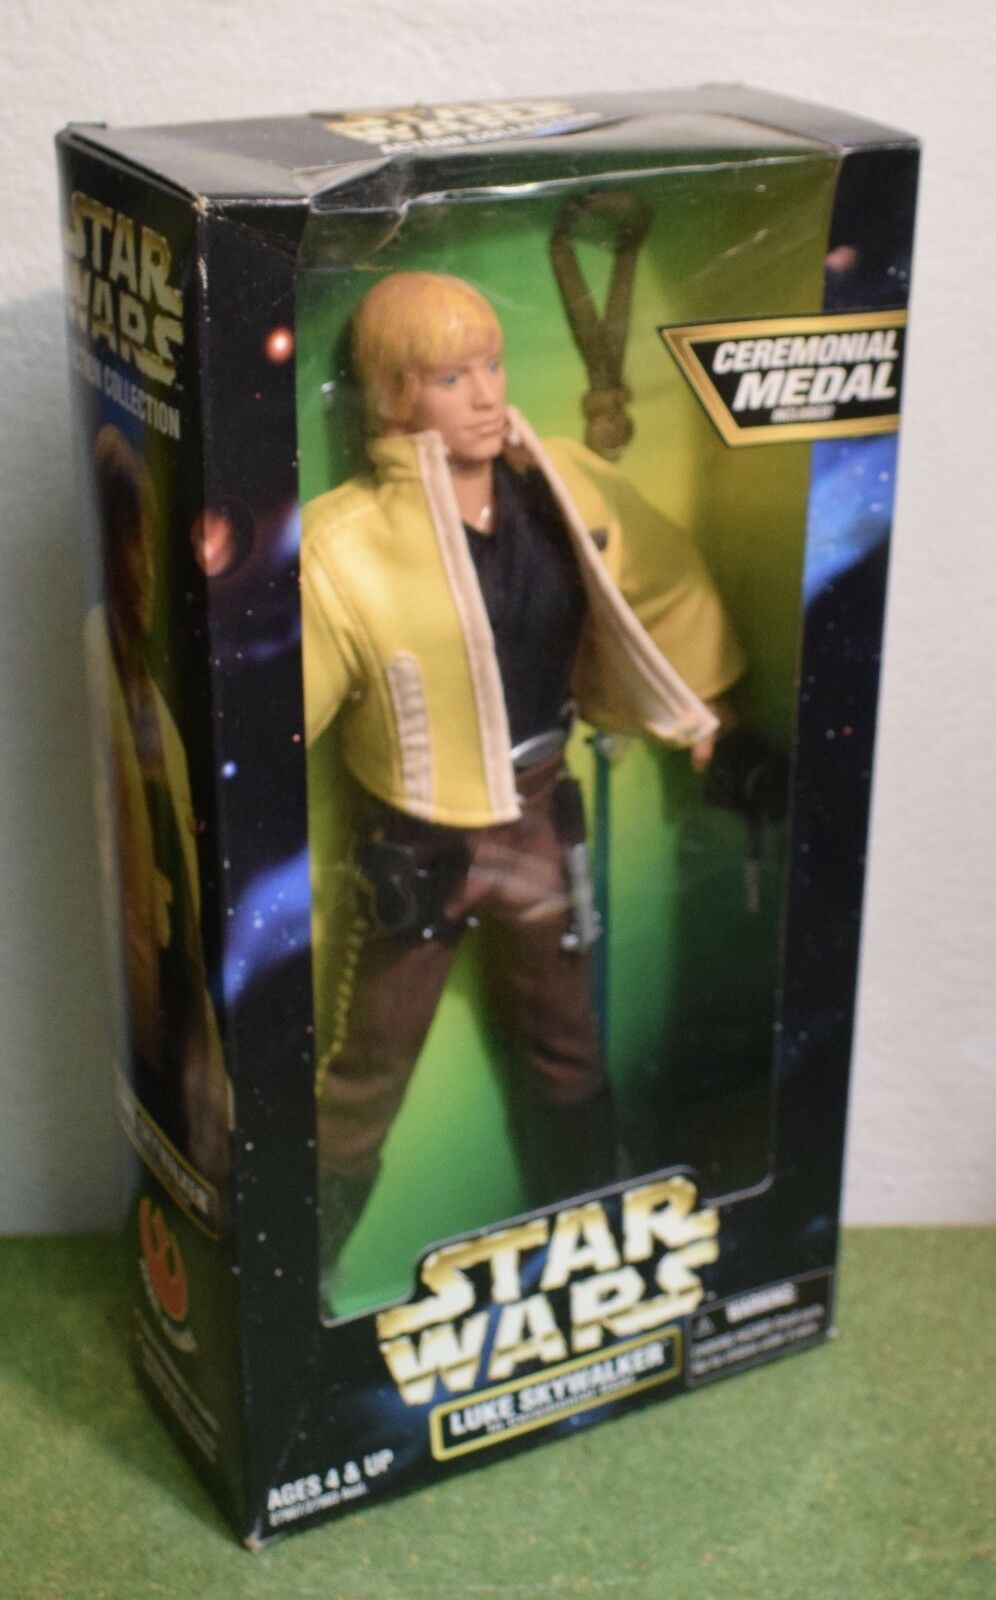 STAR WARS ACTION COLLECTION 12  LUKE SKYWALKER in CEREMONIAL GEAR  | Bekannt für seine schöne Qualität